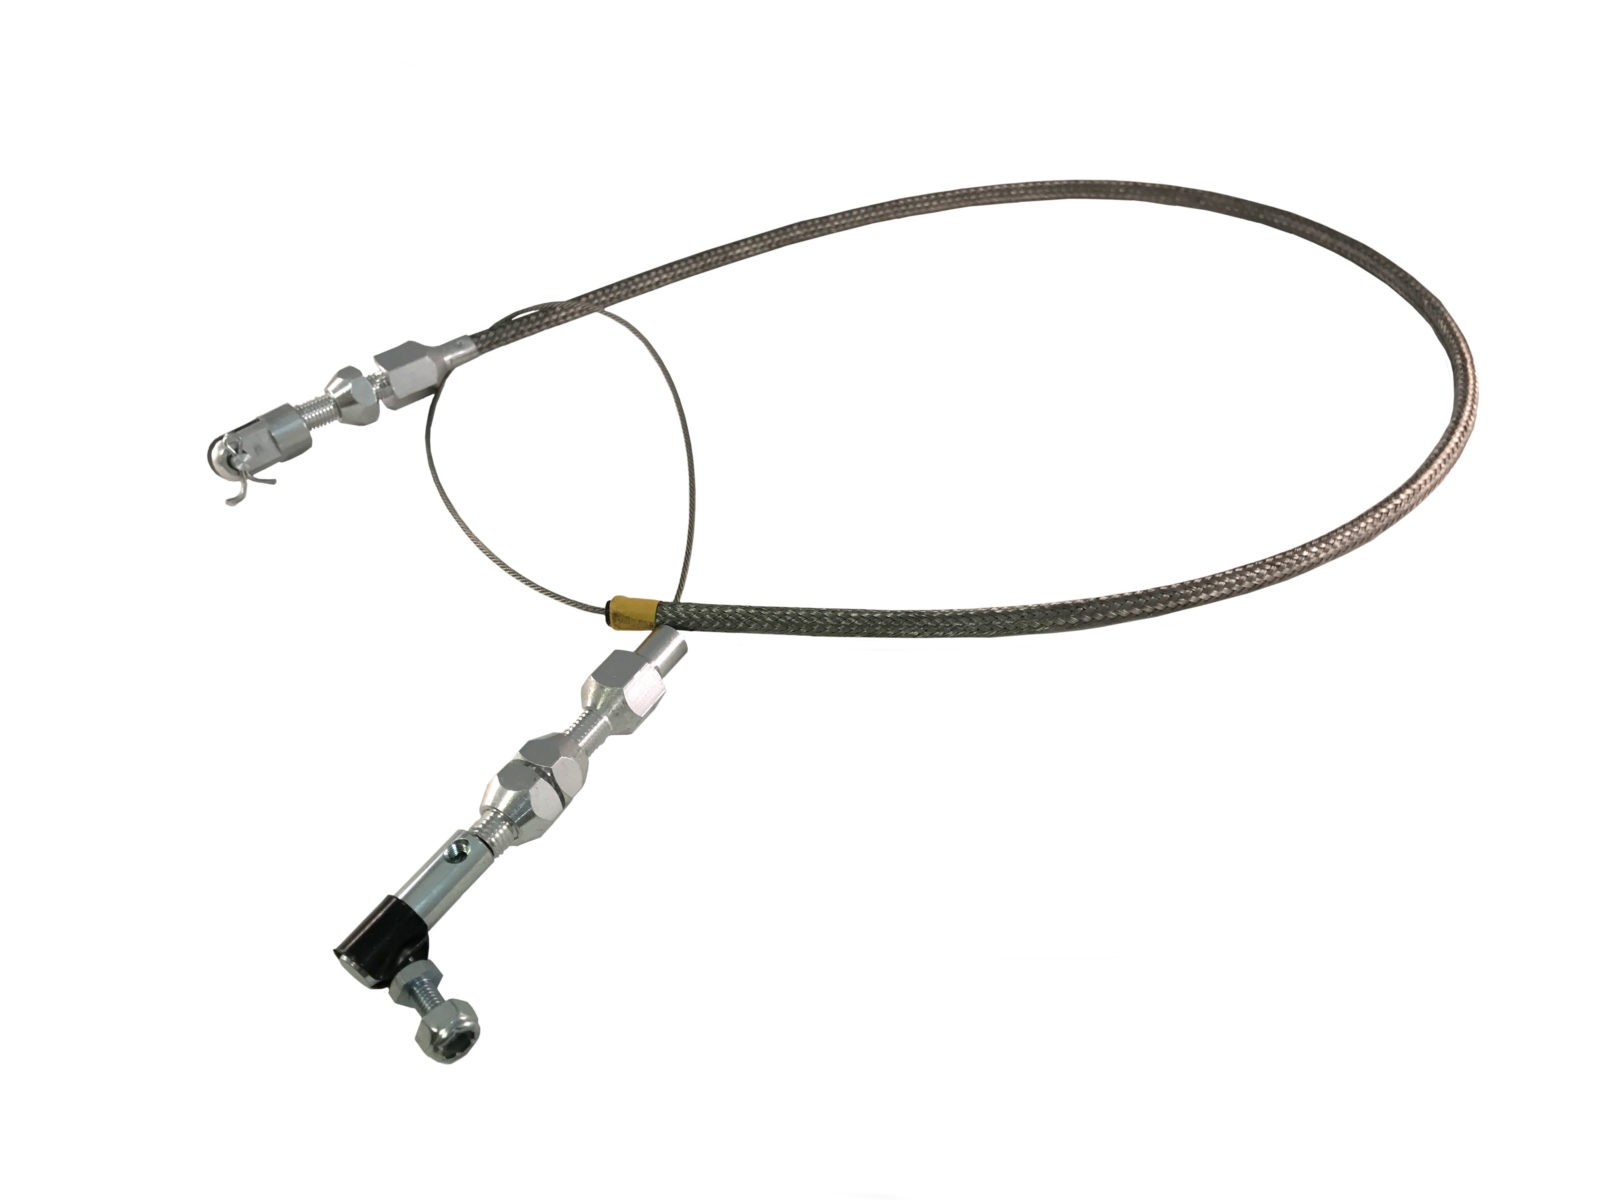 24 inch Lokar Style Throttle Cable made by PRP Racing Products